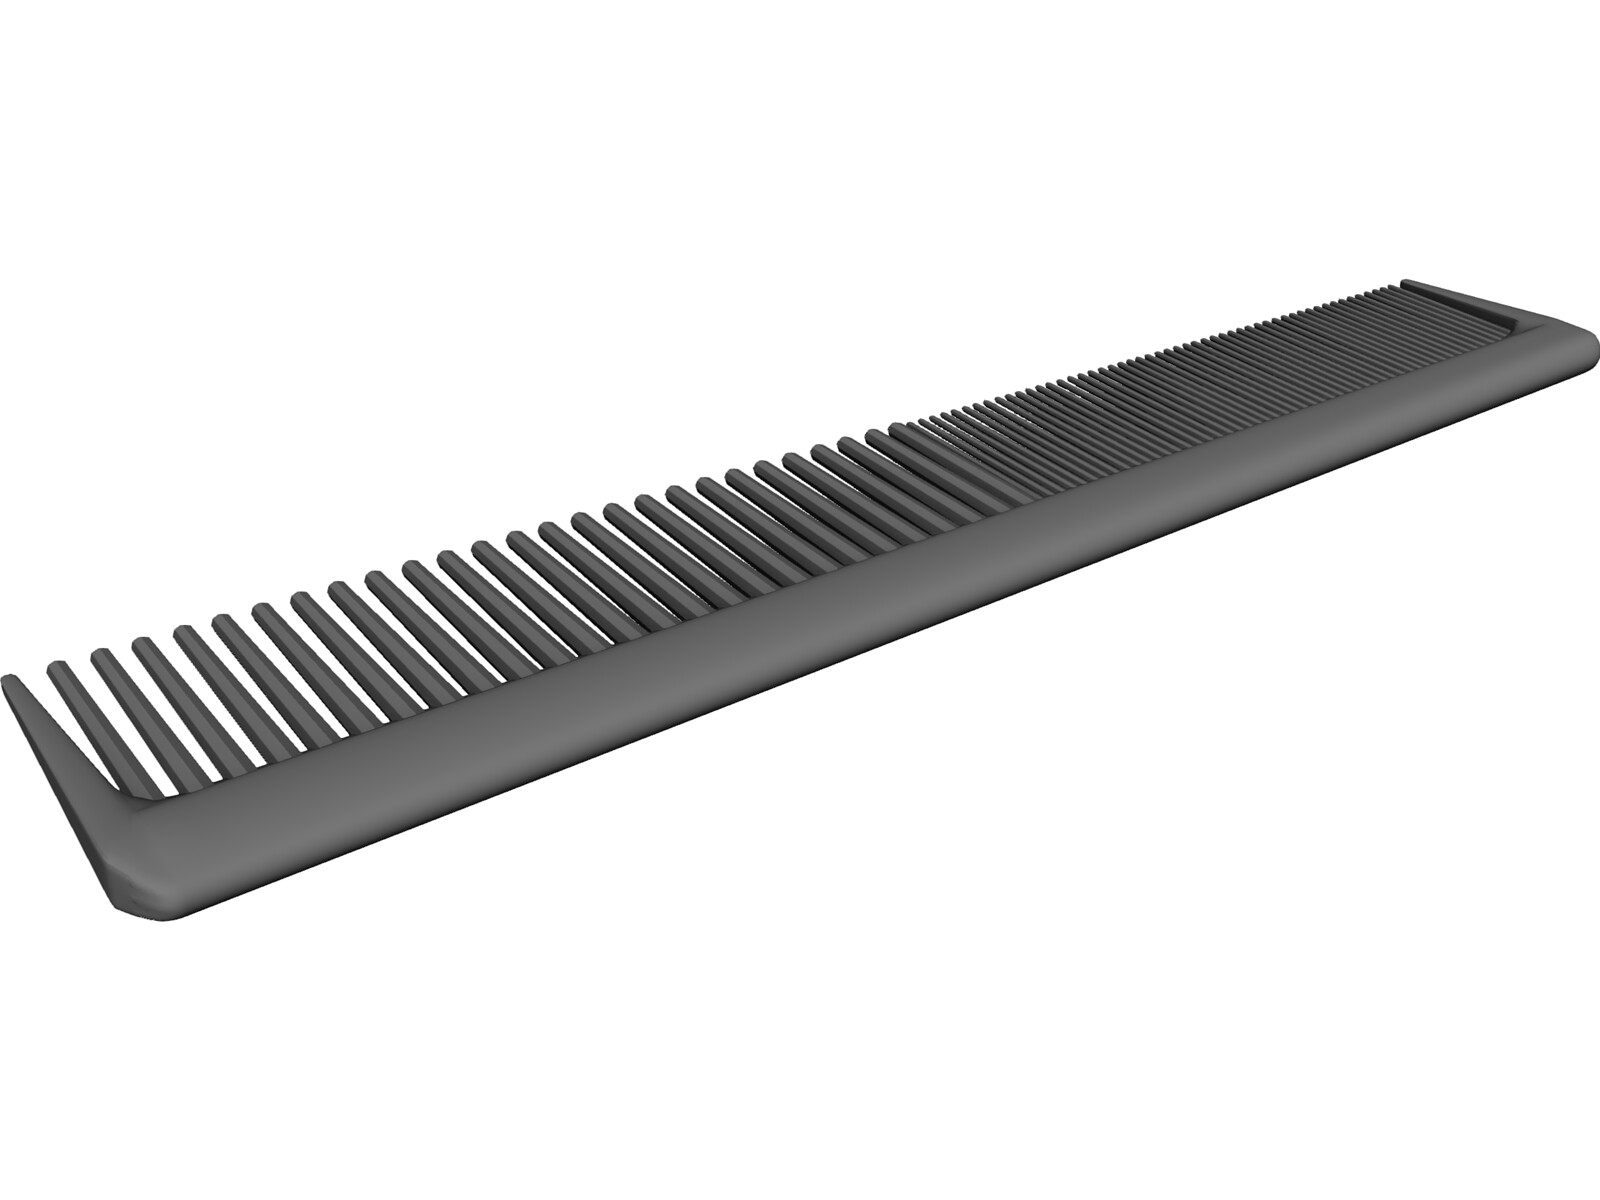 Comb Brush 3D Model